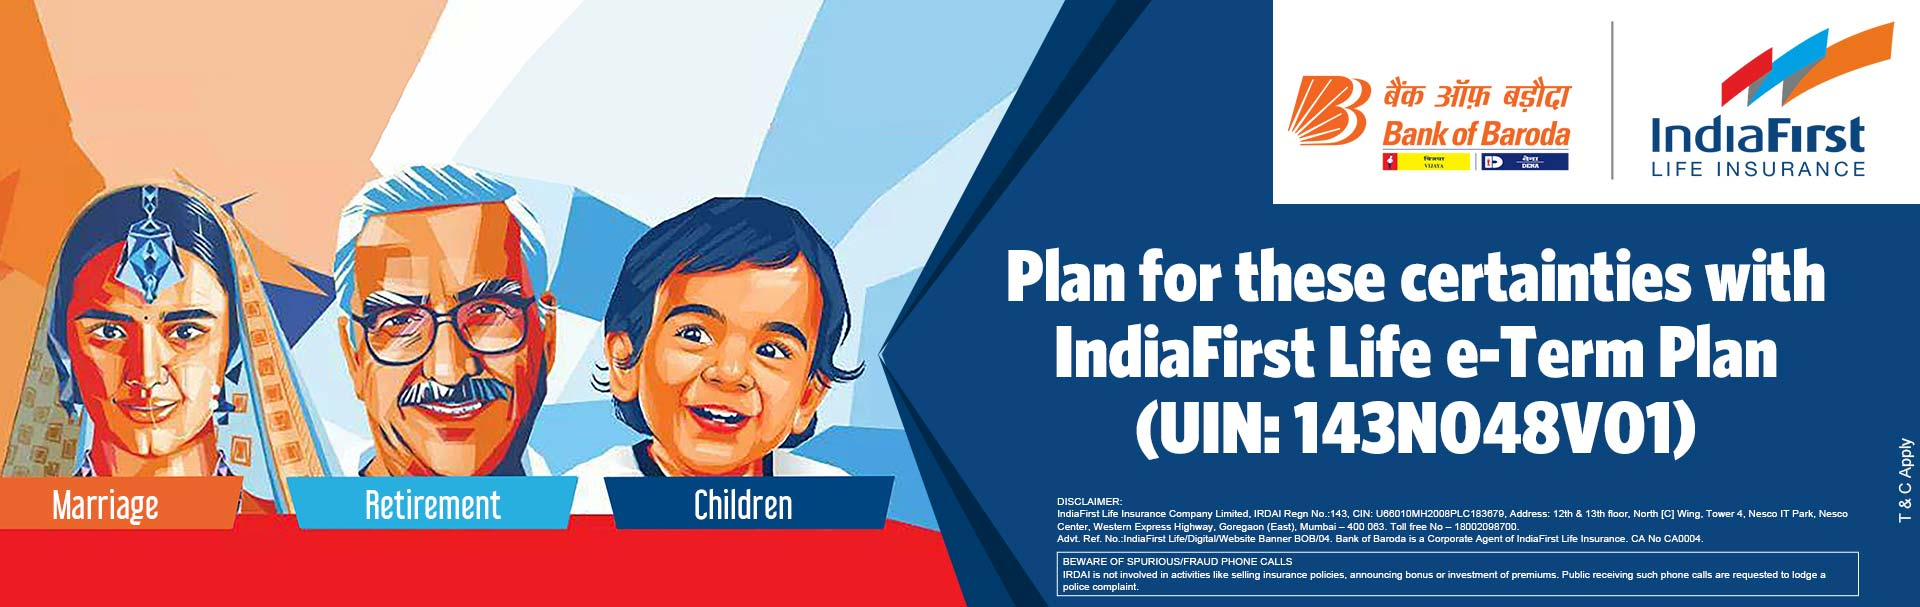 IndiaFirst Life Insurance Company Limited E-Term plan